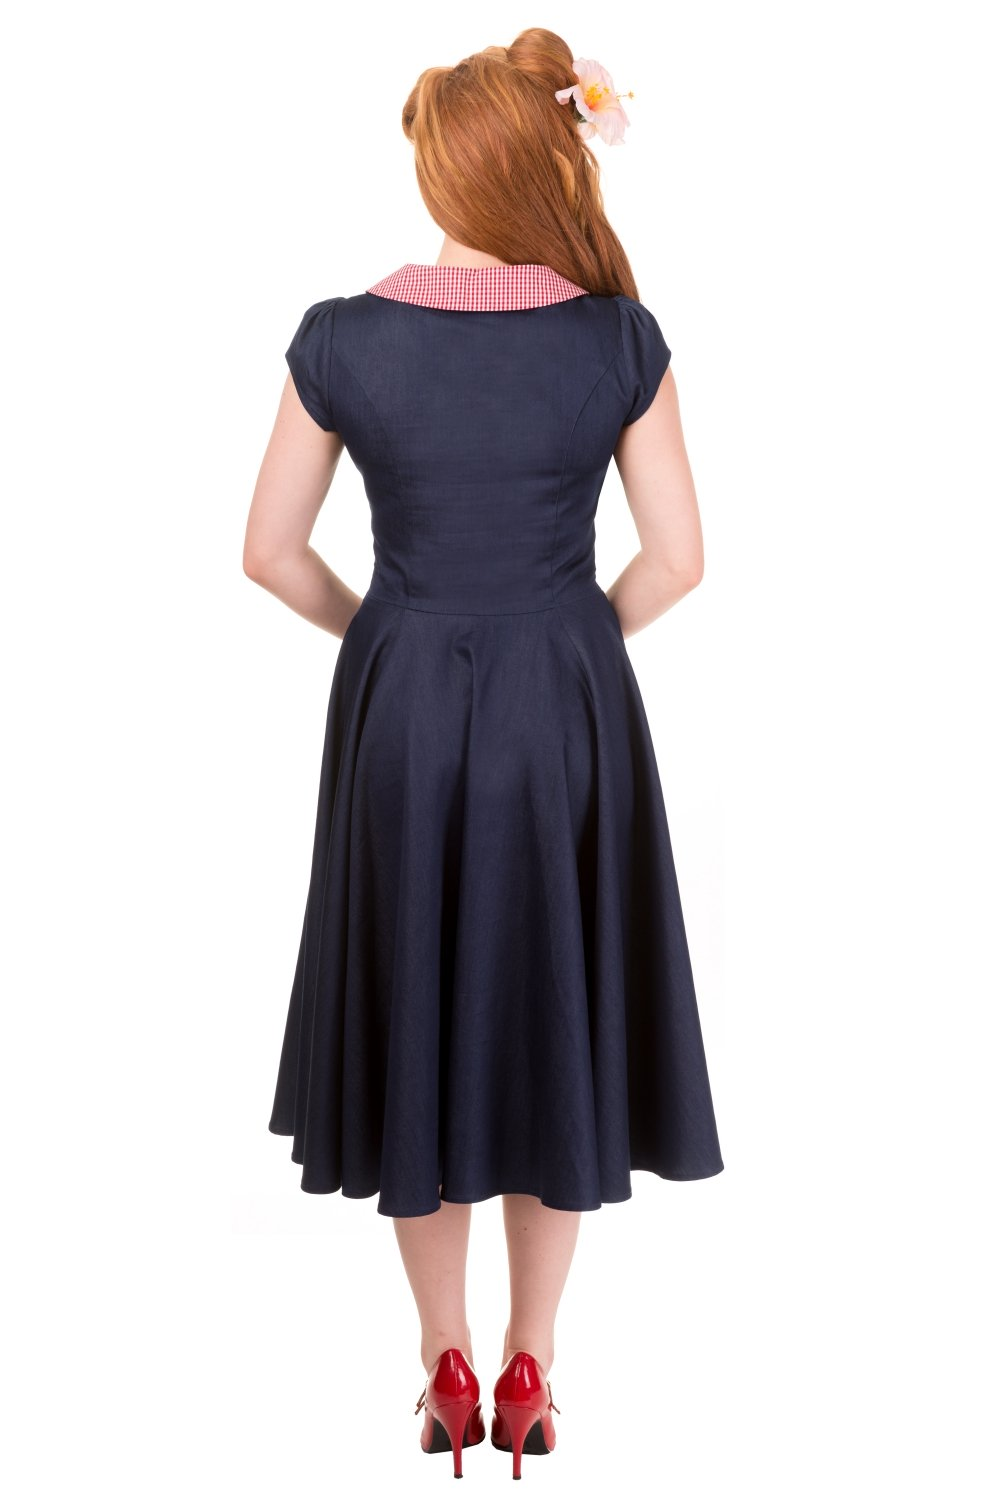 Banned Blueberry Hill Peter Pan Gingham Dress